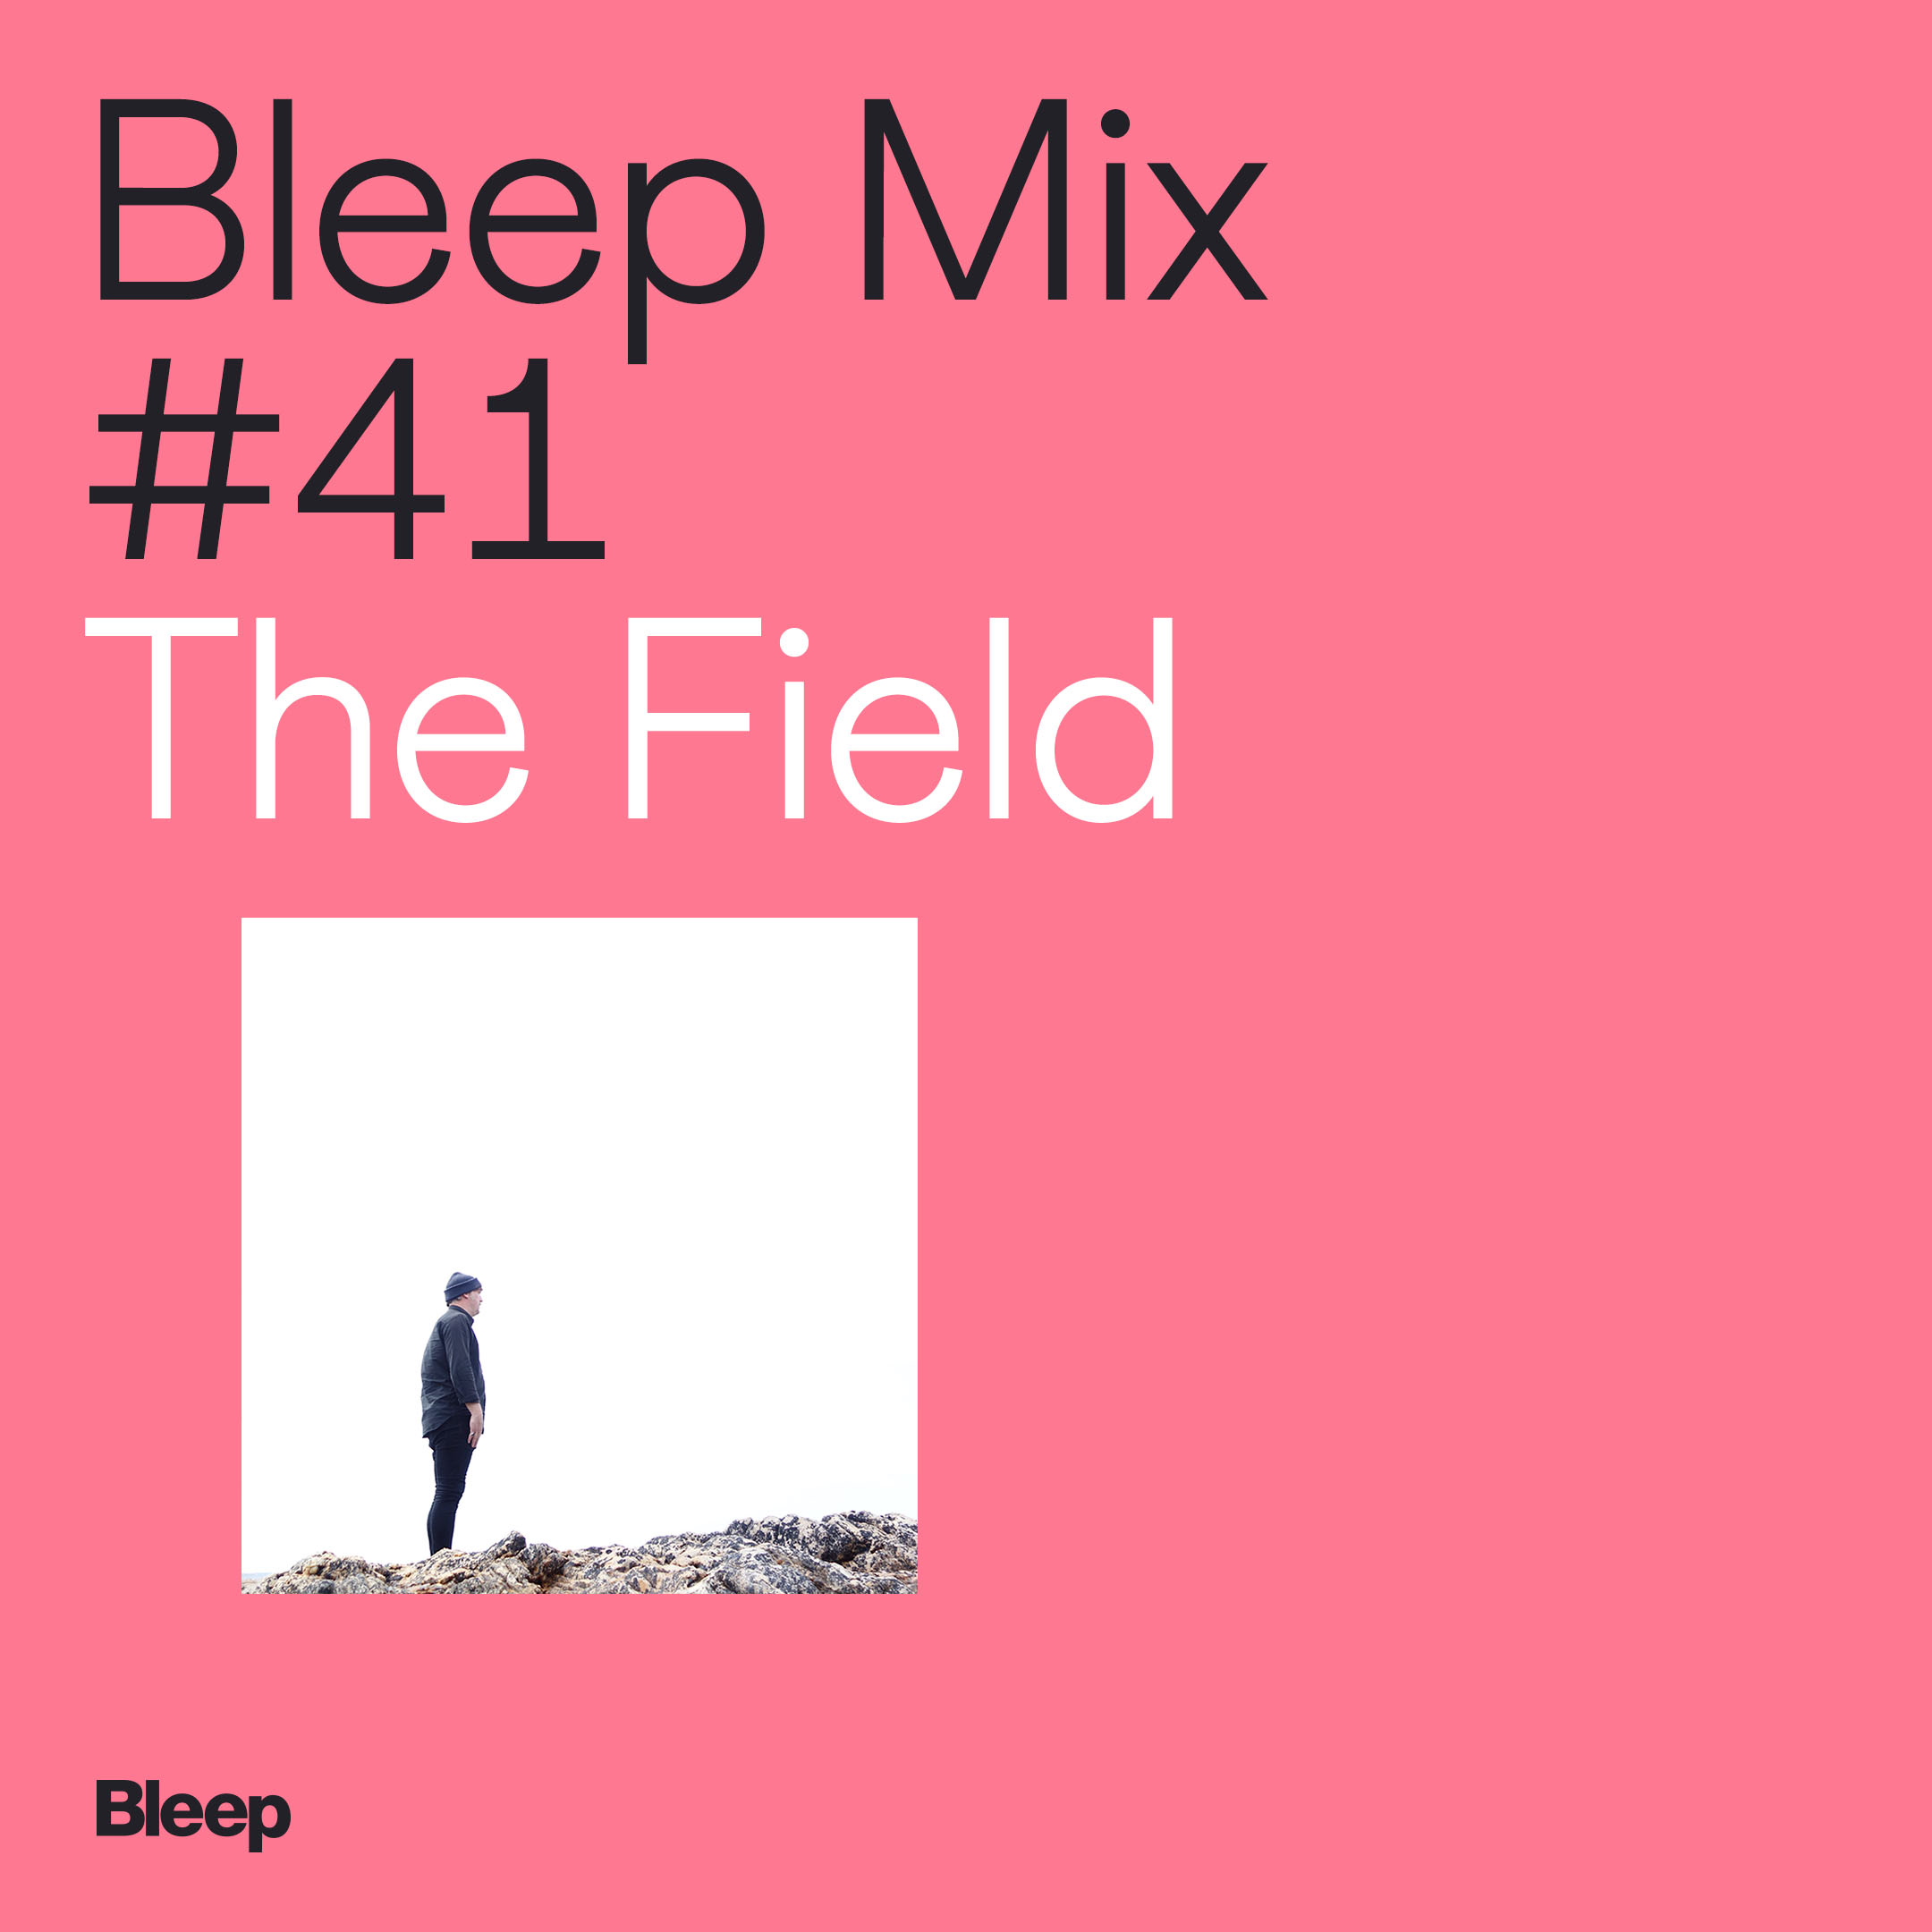 Bleep Mix #41 - The Field